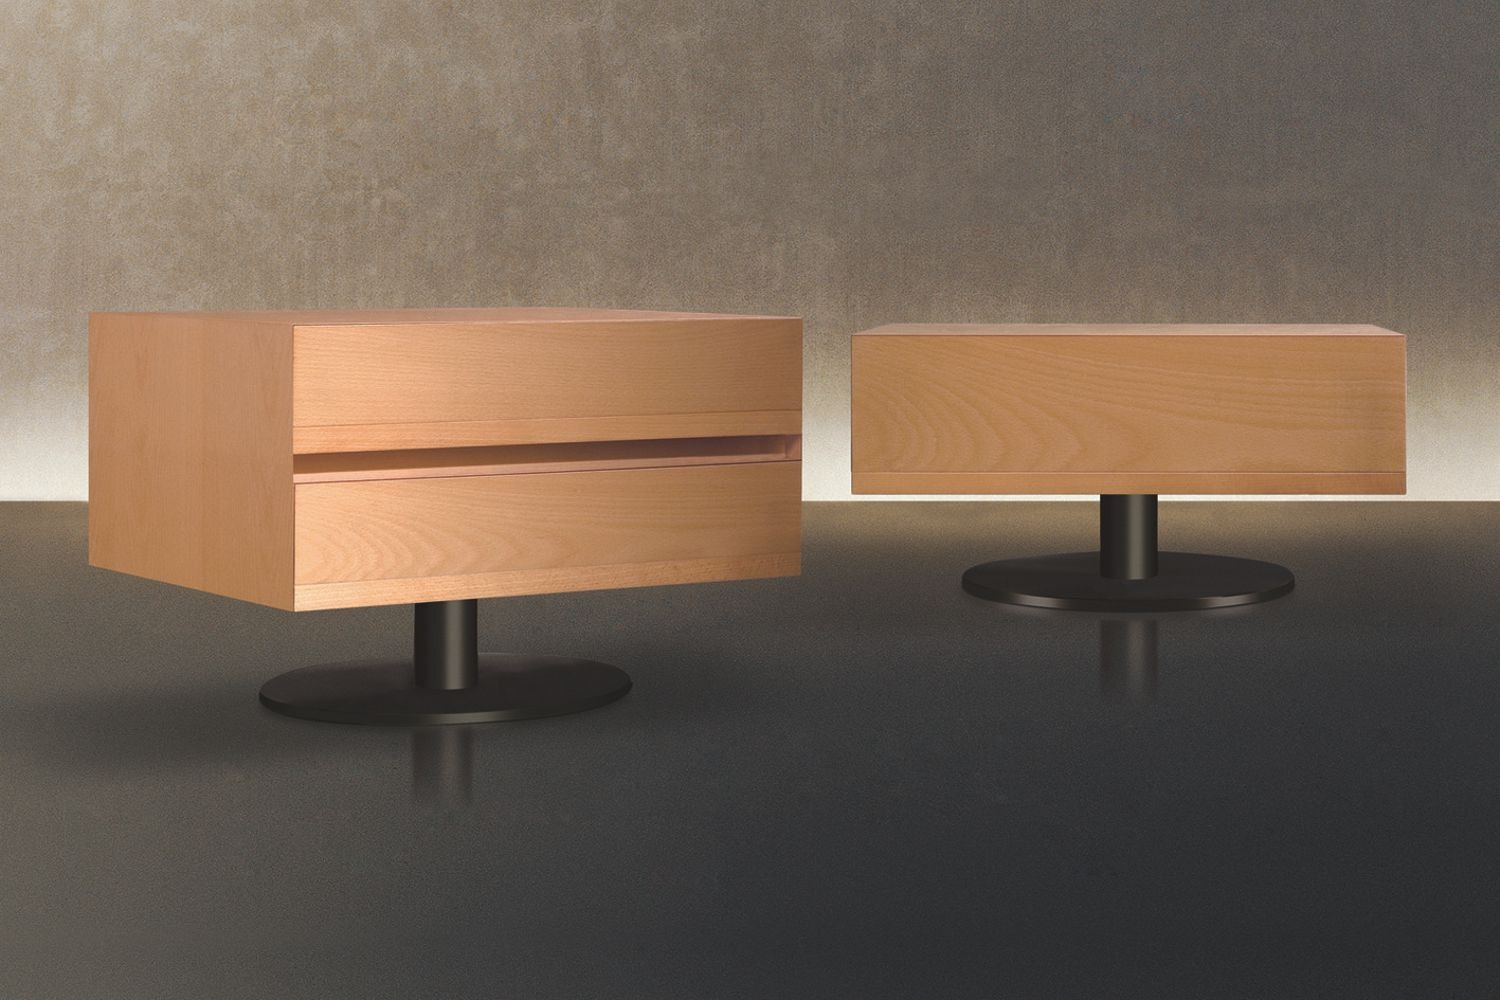 Norma Bedside Table by Massimo Scolari for Giorgetti